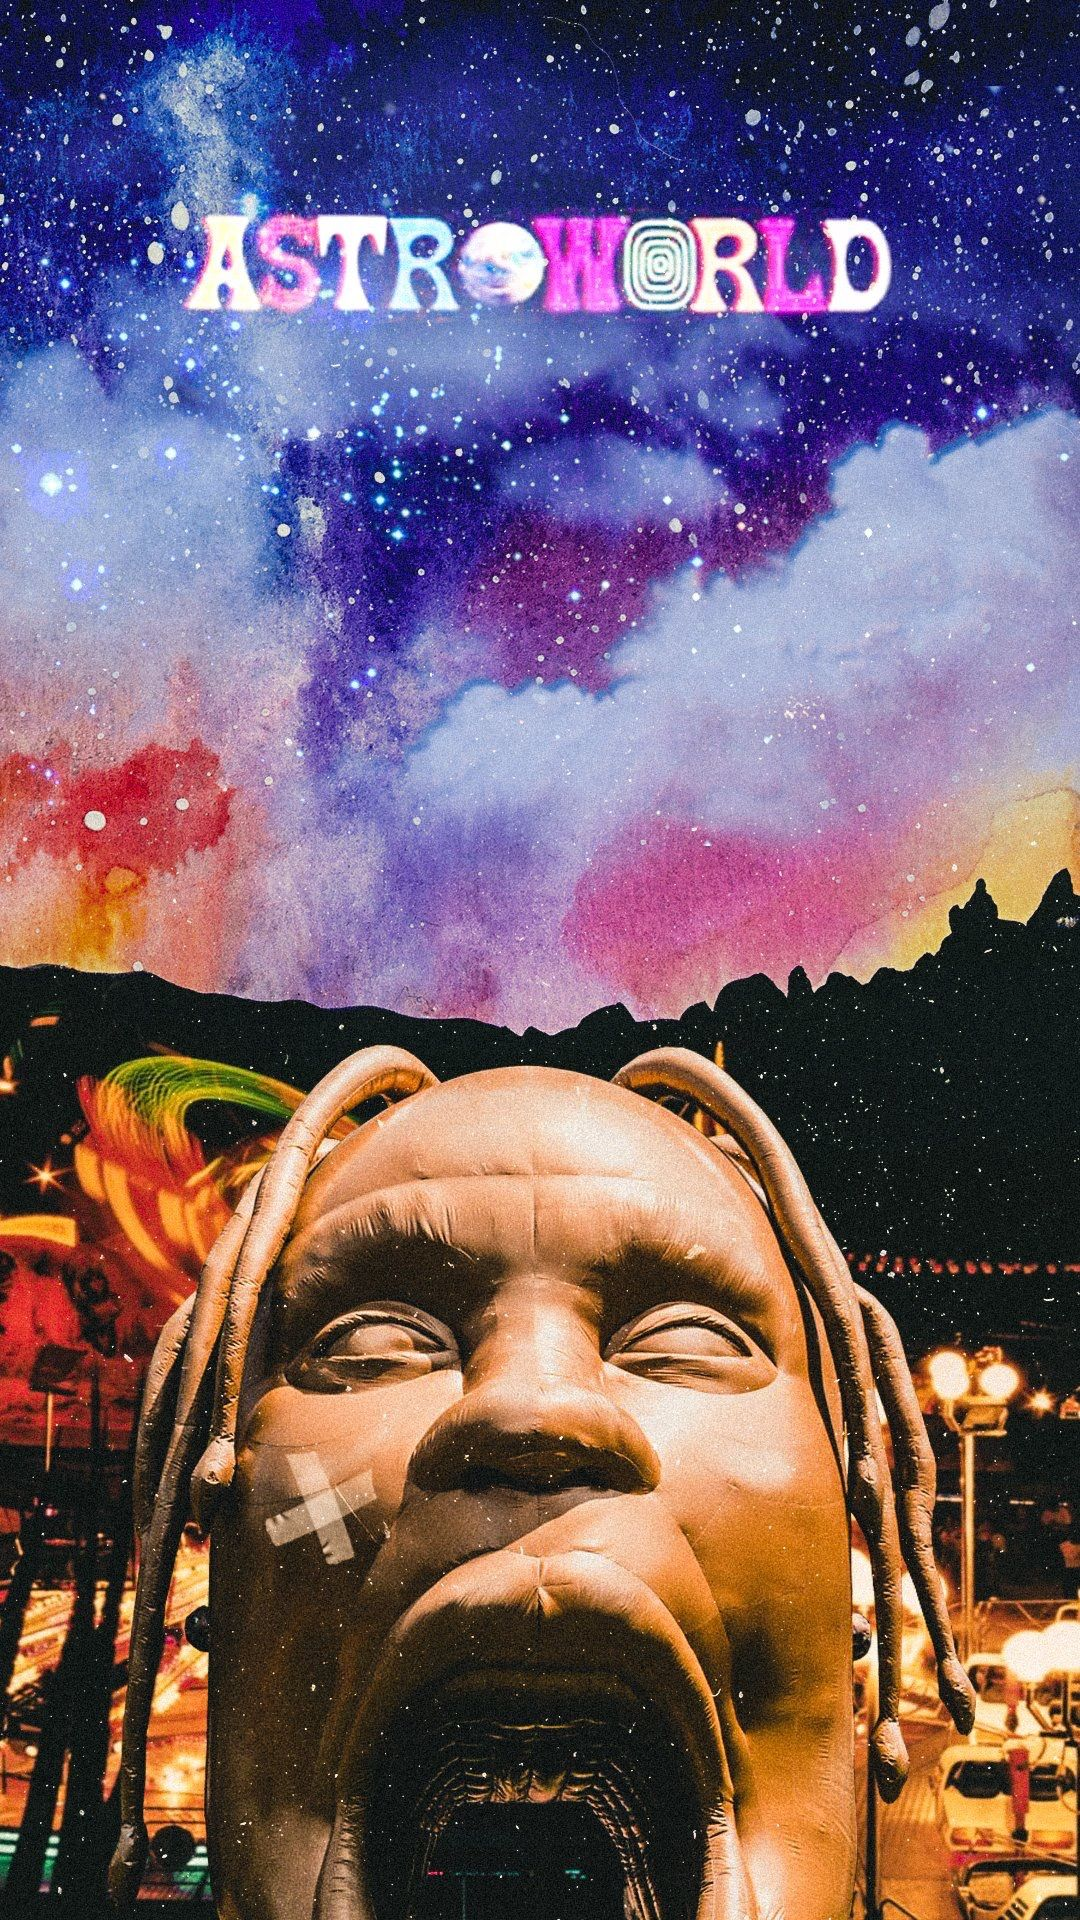 Astroworld Travis Scott Wallpaper Sfondi Vintage Sfondi Sfondi Iphone